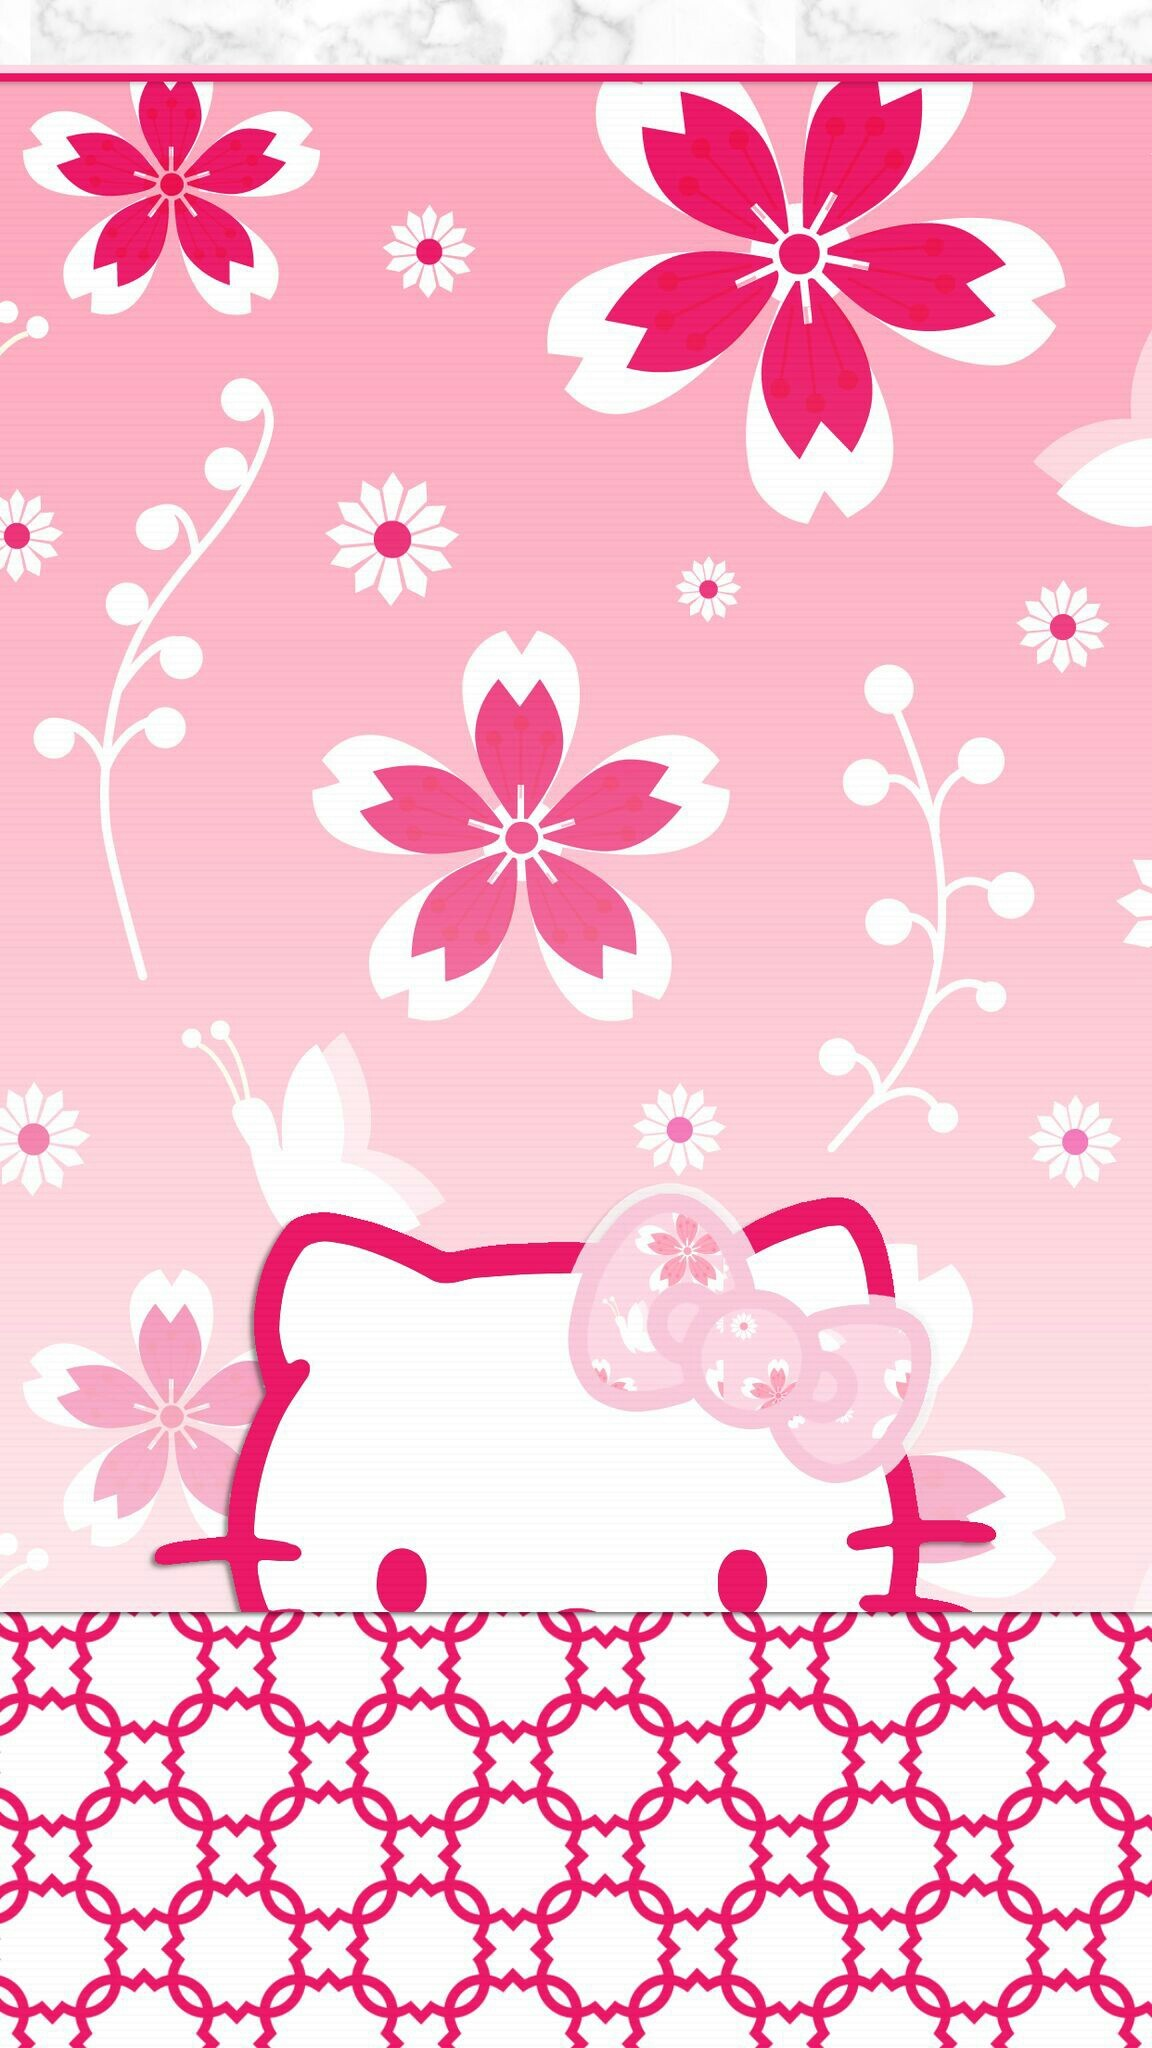 Cute Hello Kitty Wallpaper Android Cute Wallpapers Of Hello Kitty 60 Images